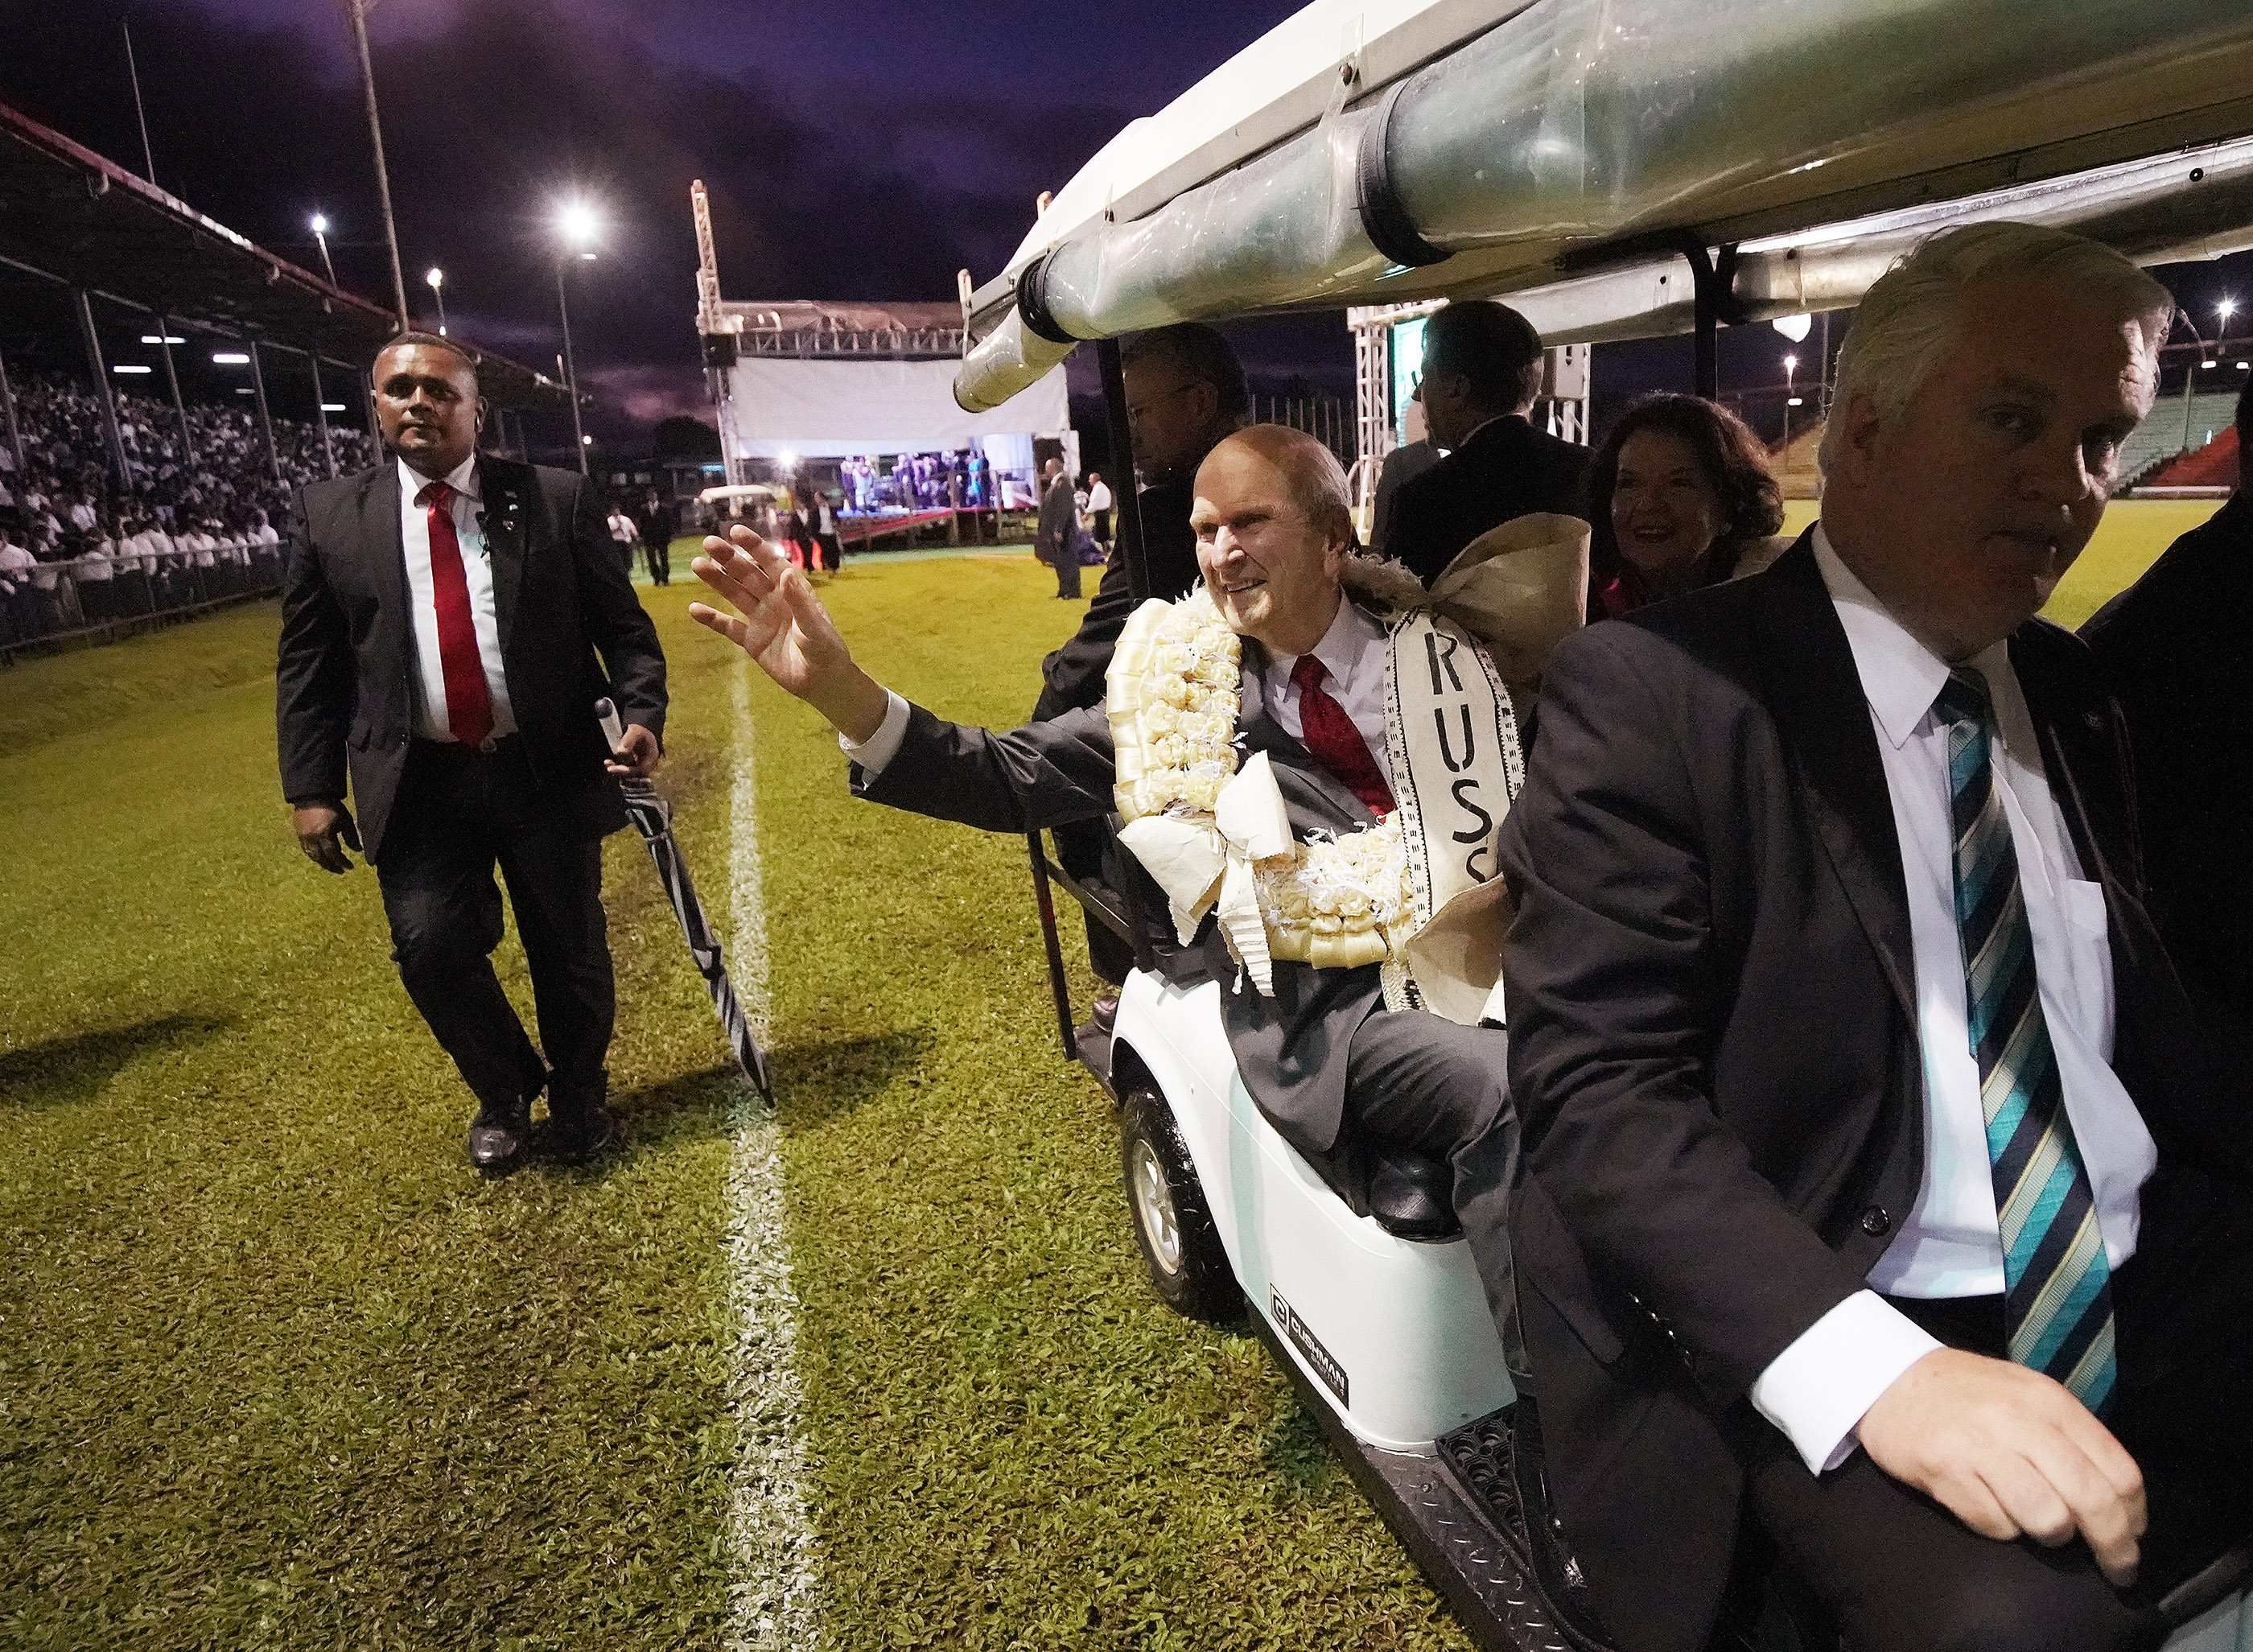 President Russell M. Nelson of The Church of Jesus Christ of Latter-day Saints waves to attendees after a devotional at Ratu Cakobau Park stadium in Nausori, Fiji, on May 22, 2019.